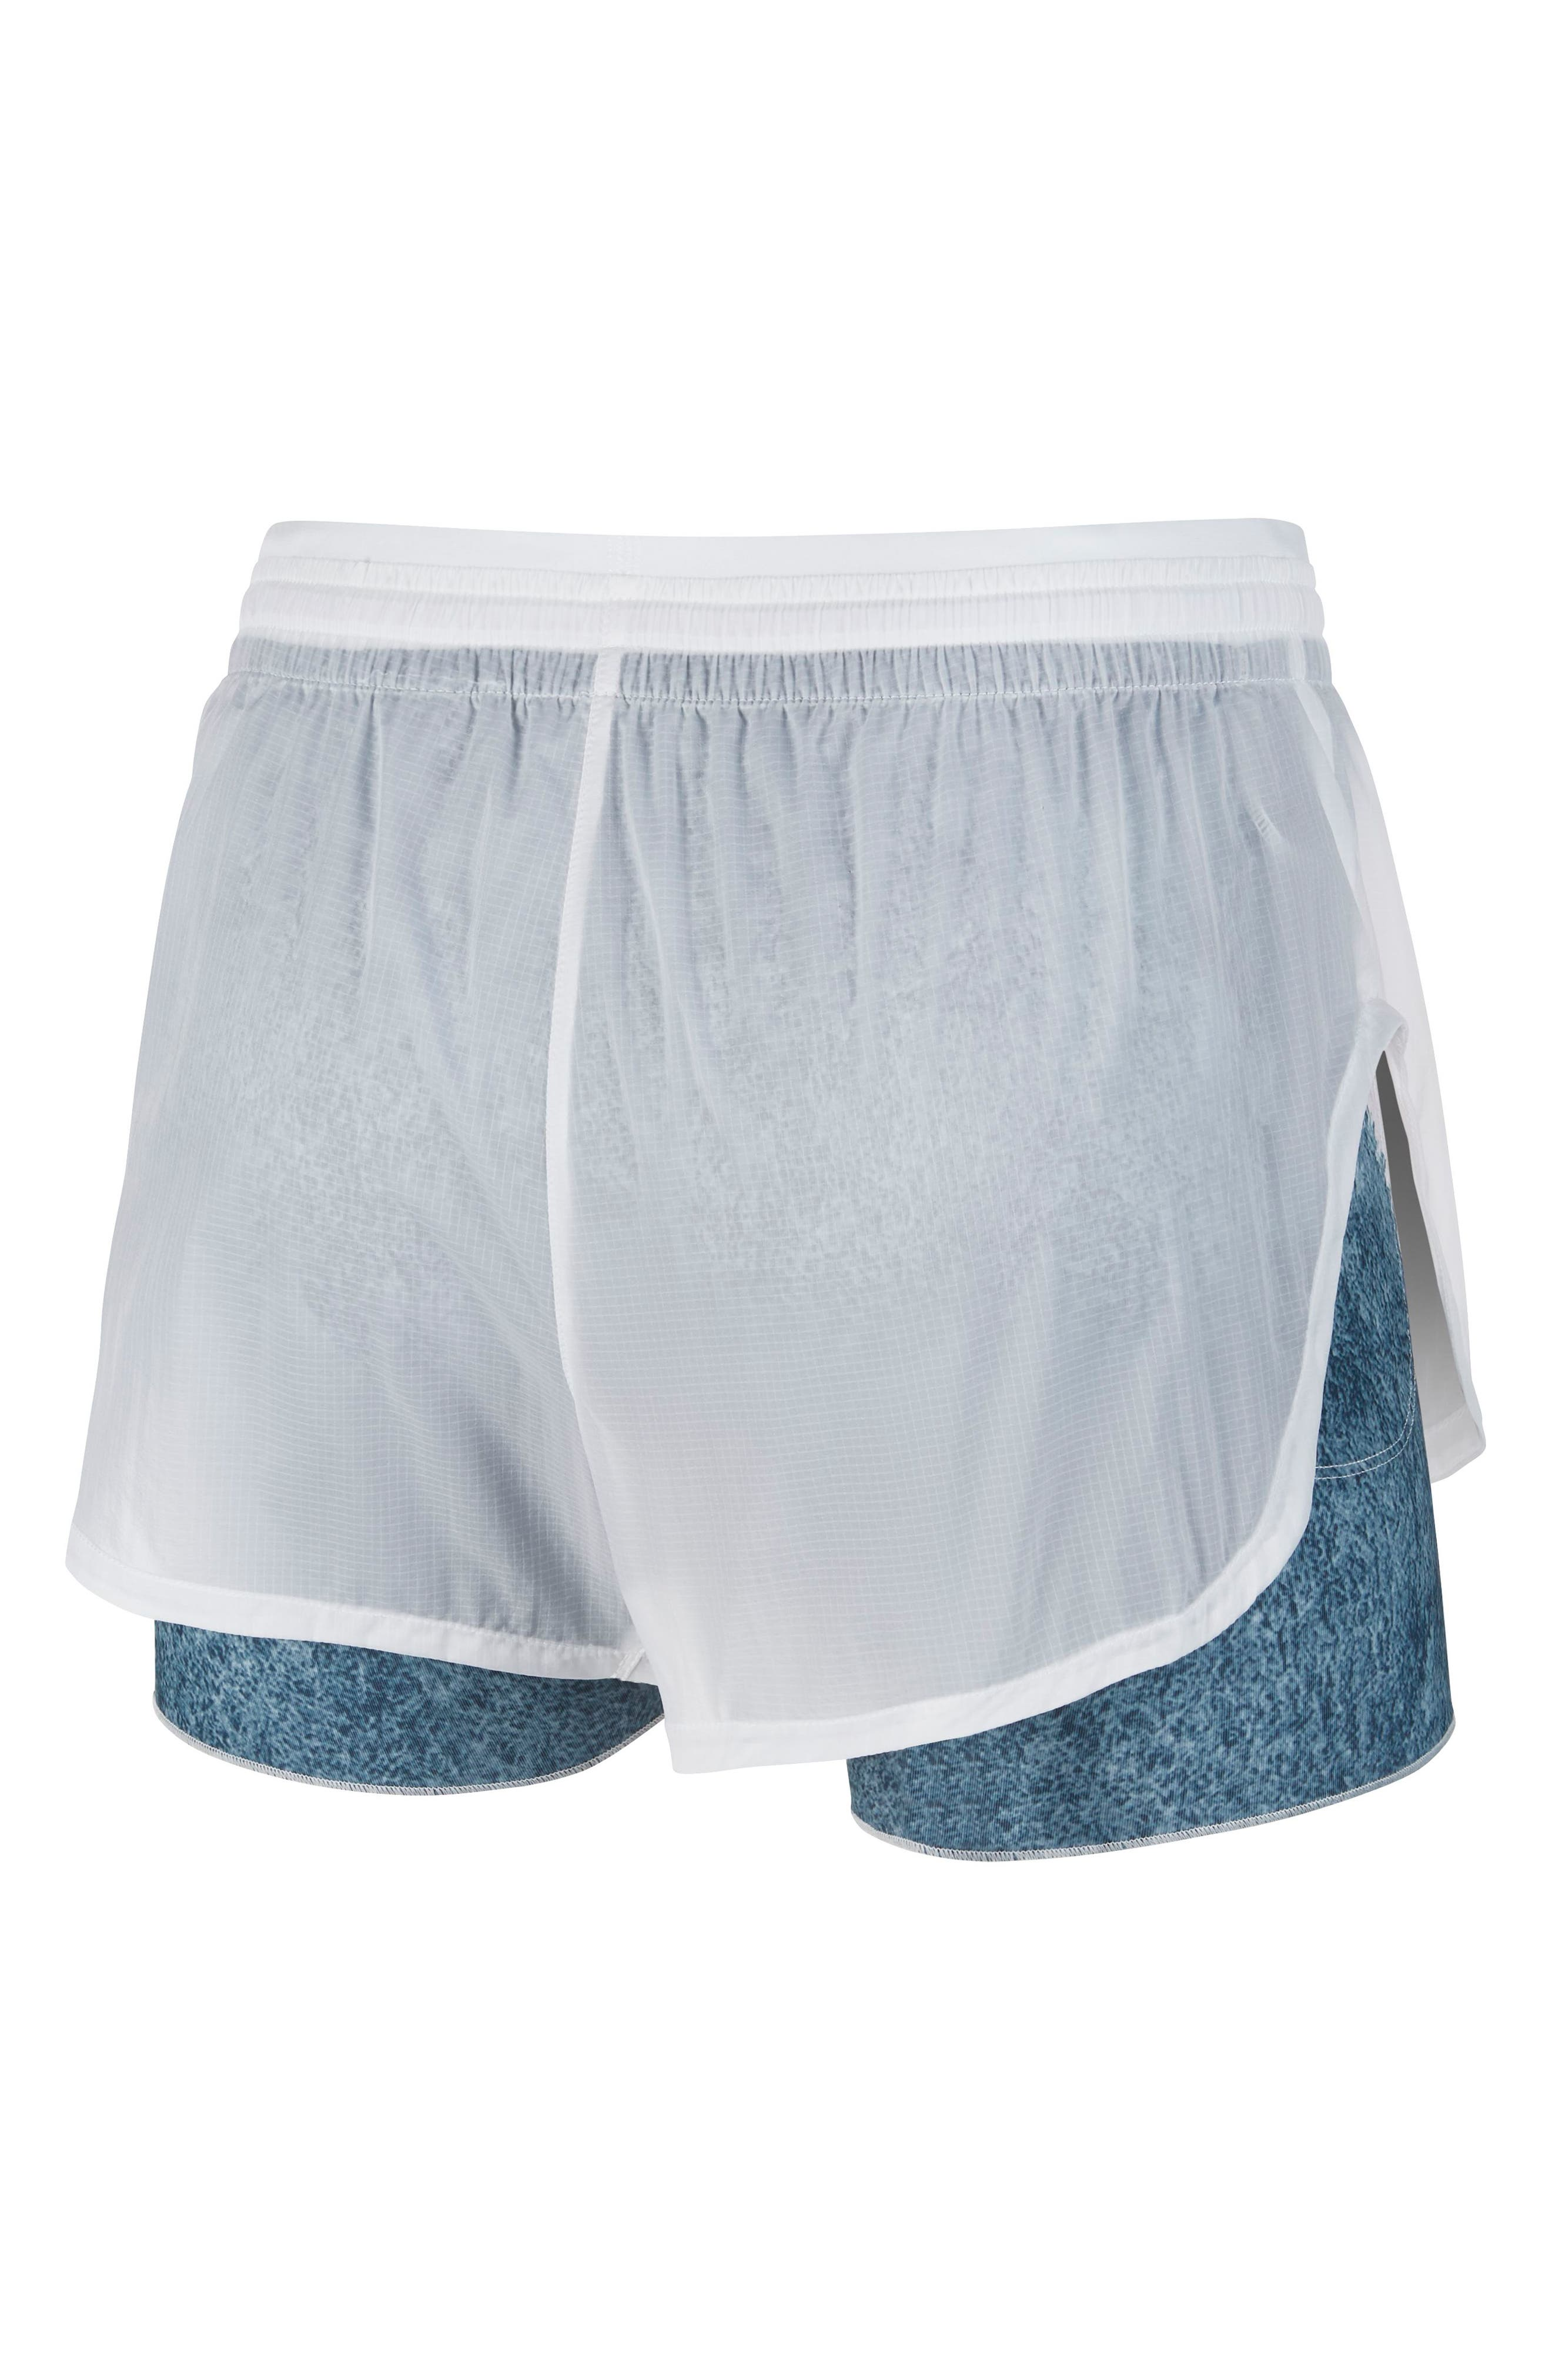 Elevate 2-in-1 Running Shorts,                             Alternate thumbnail 8, color,                             WHITE